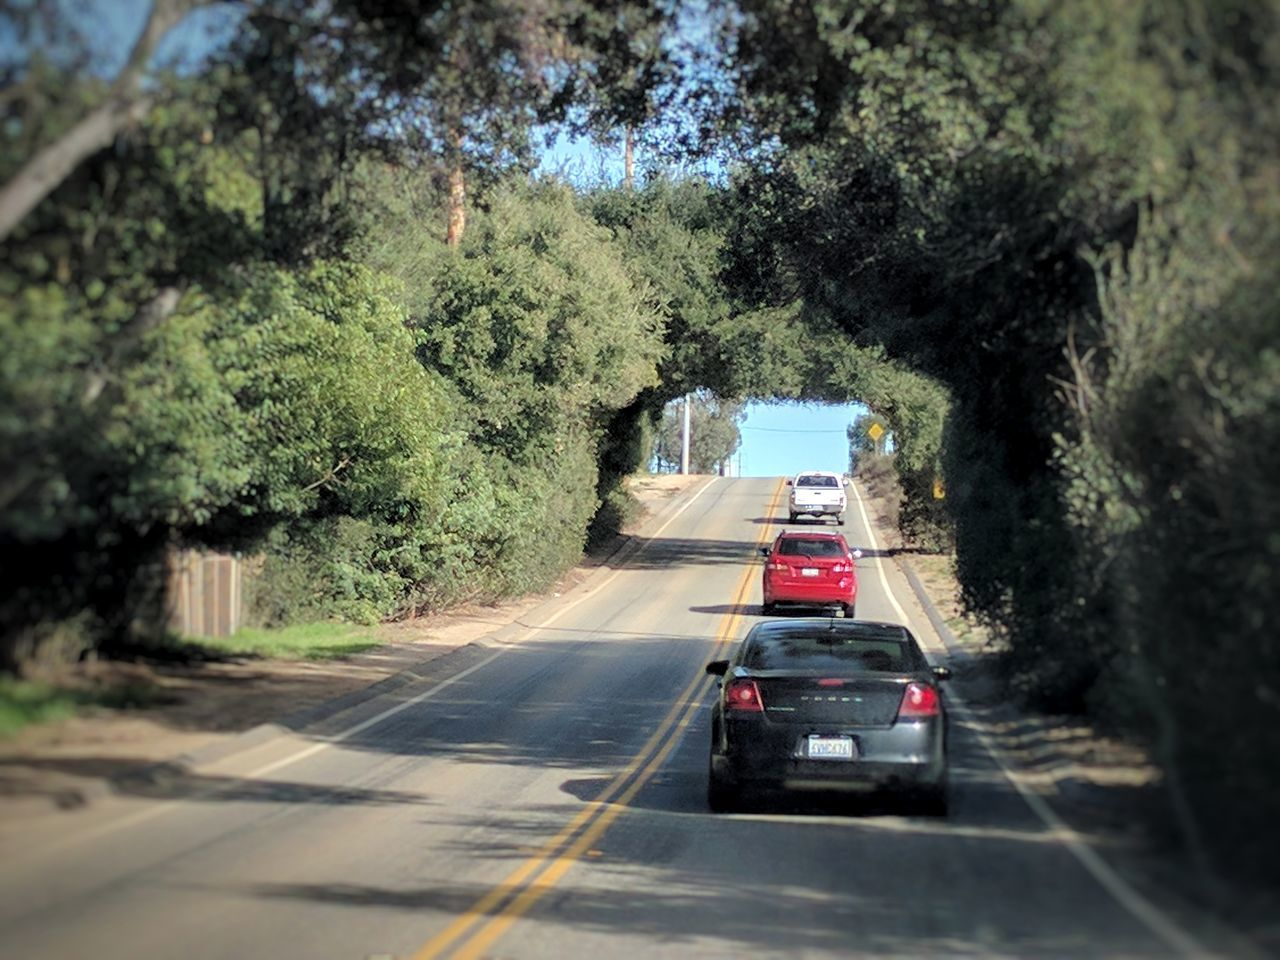 revisiting the tree tunnel Transportation Outdoors The Way Forward Nature Road On The Road In A Car Outdoor Photography Taking Photos EyeEm Gallery Rural Scene Country RoadGrowth Side Of The Road EyeEm Nature Lover Trees And Sky Trees Afternoon Blue Sky Vehicles Traffic